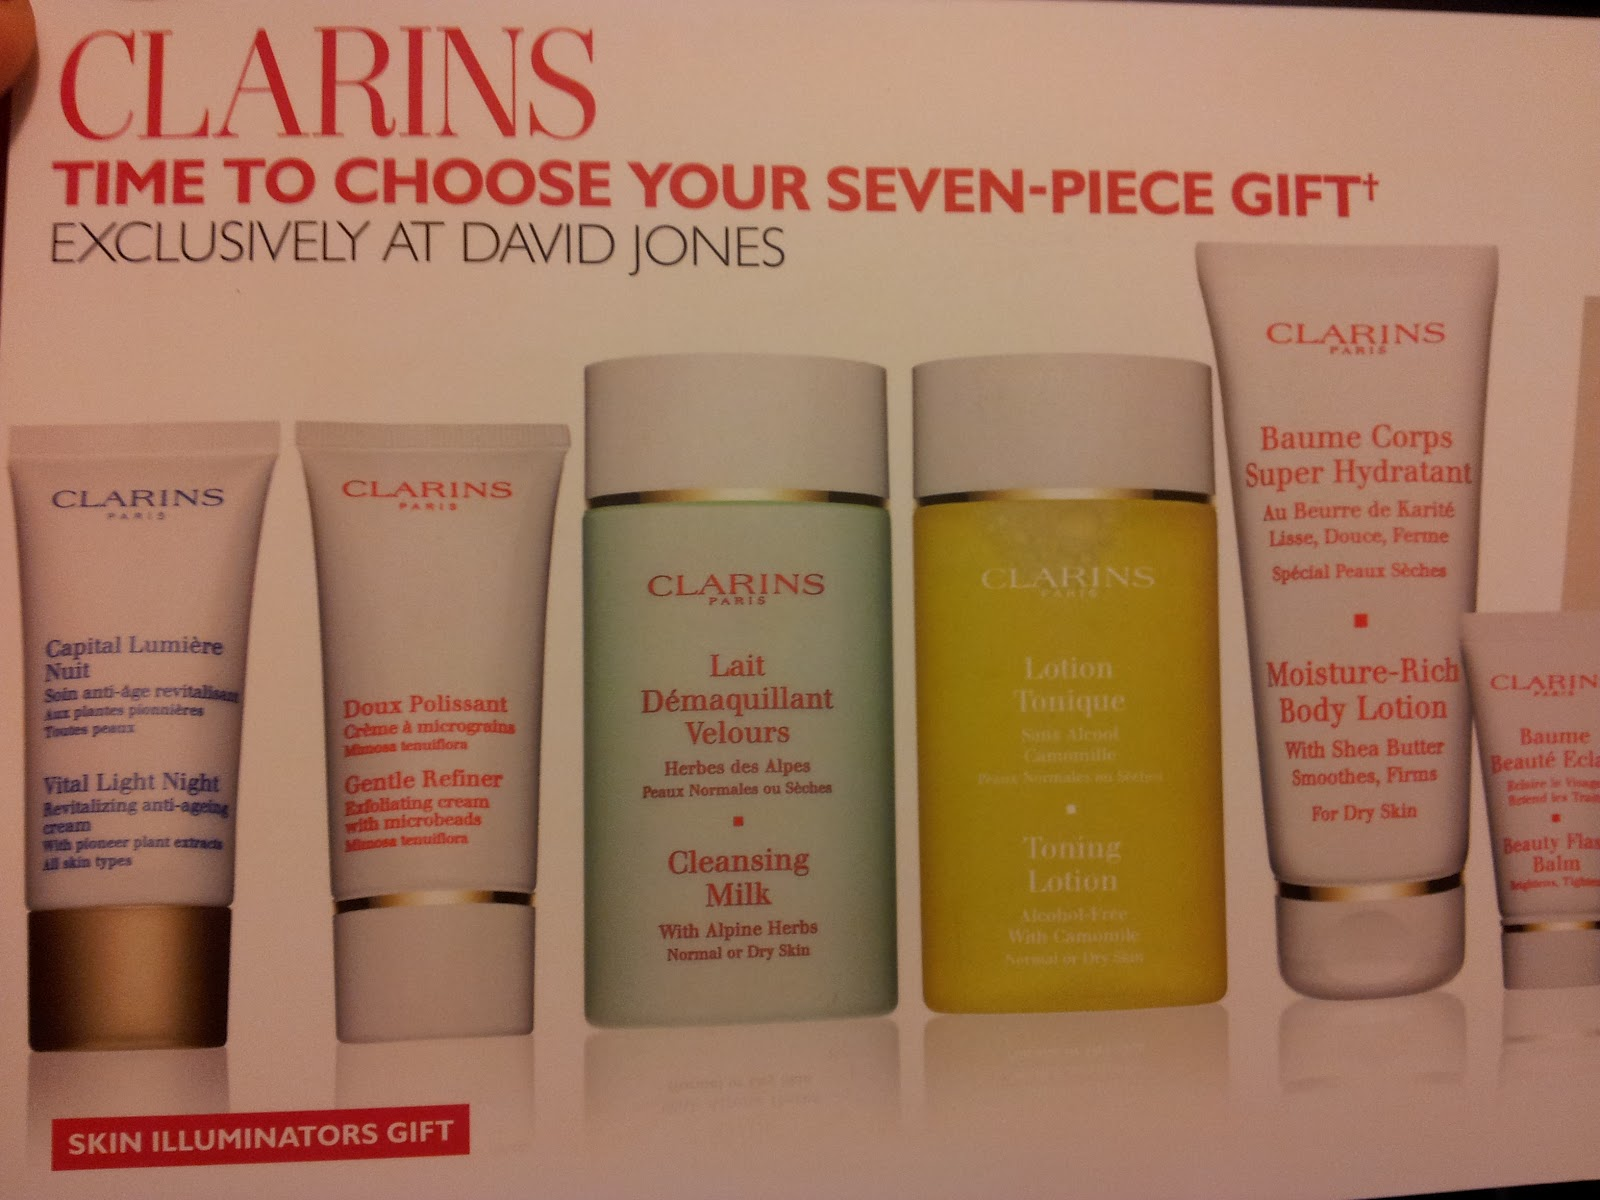 Get a Clarins gift free with qualifying purchase at hocalinkz1.ga See offer details. Free shipping on all Clarins beauty and skincare. Free returns. All the time. We're fresh out of this Clarins gift .